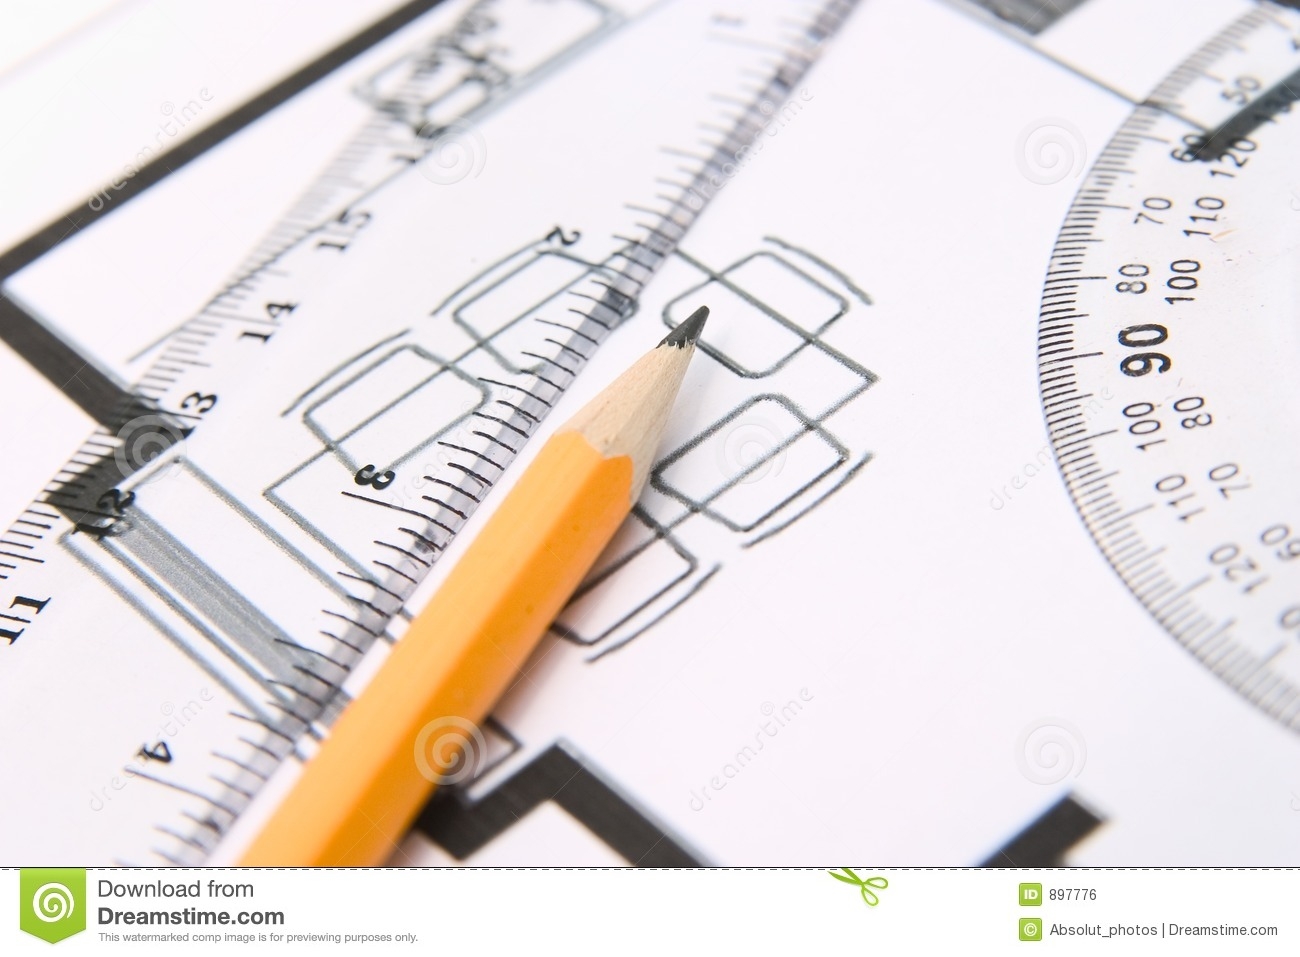 Pencil and a protractor